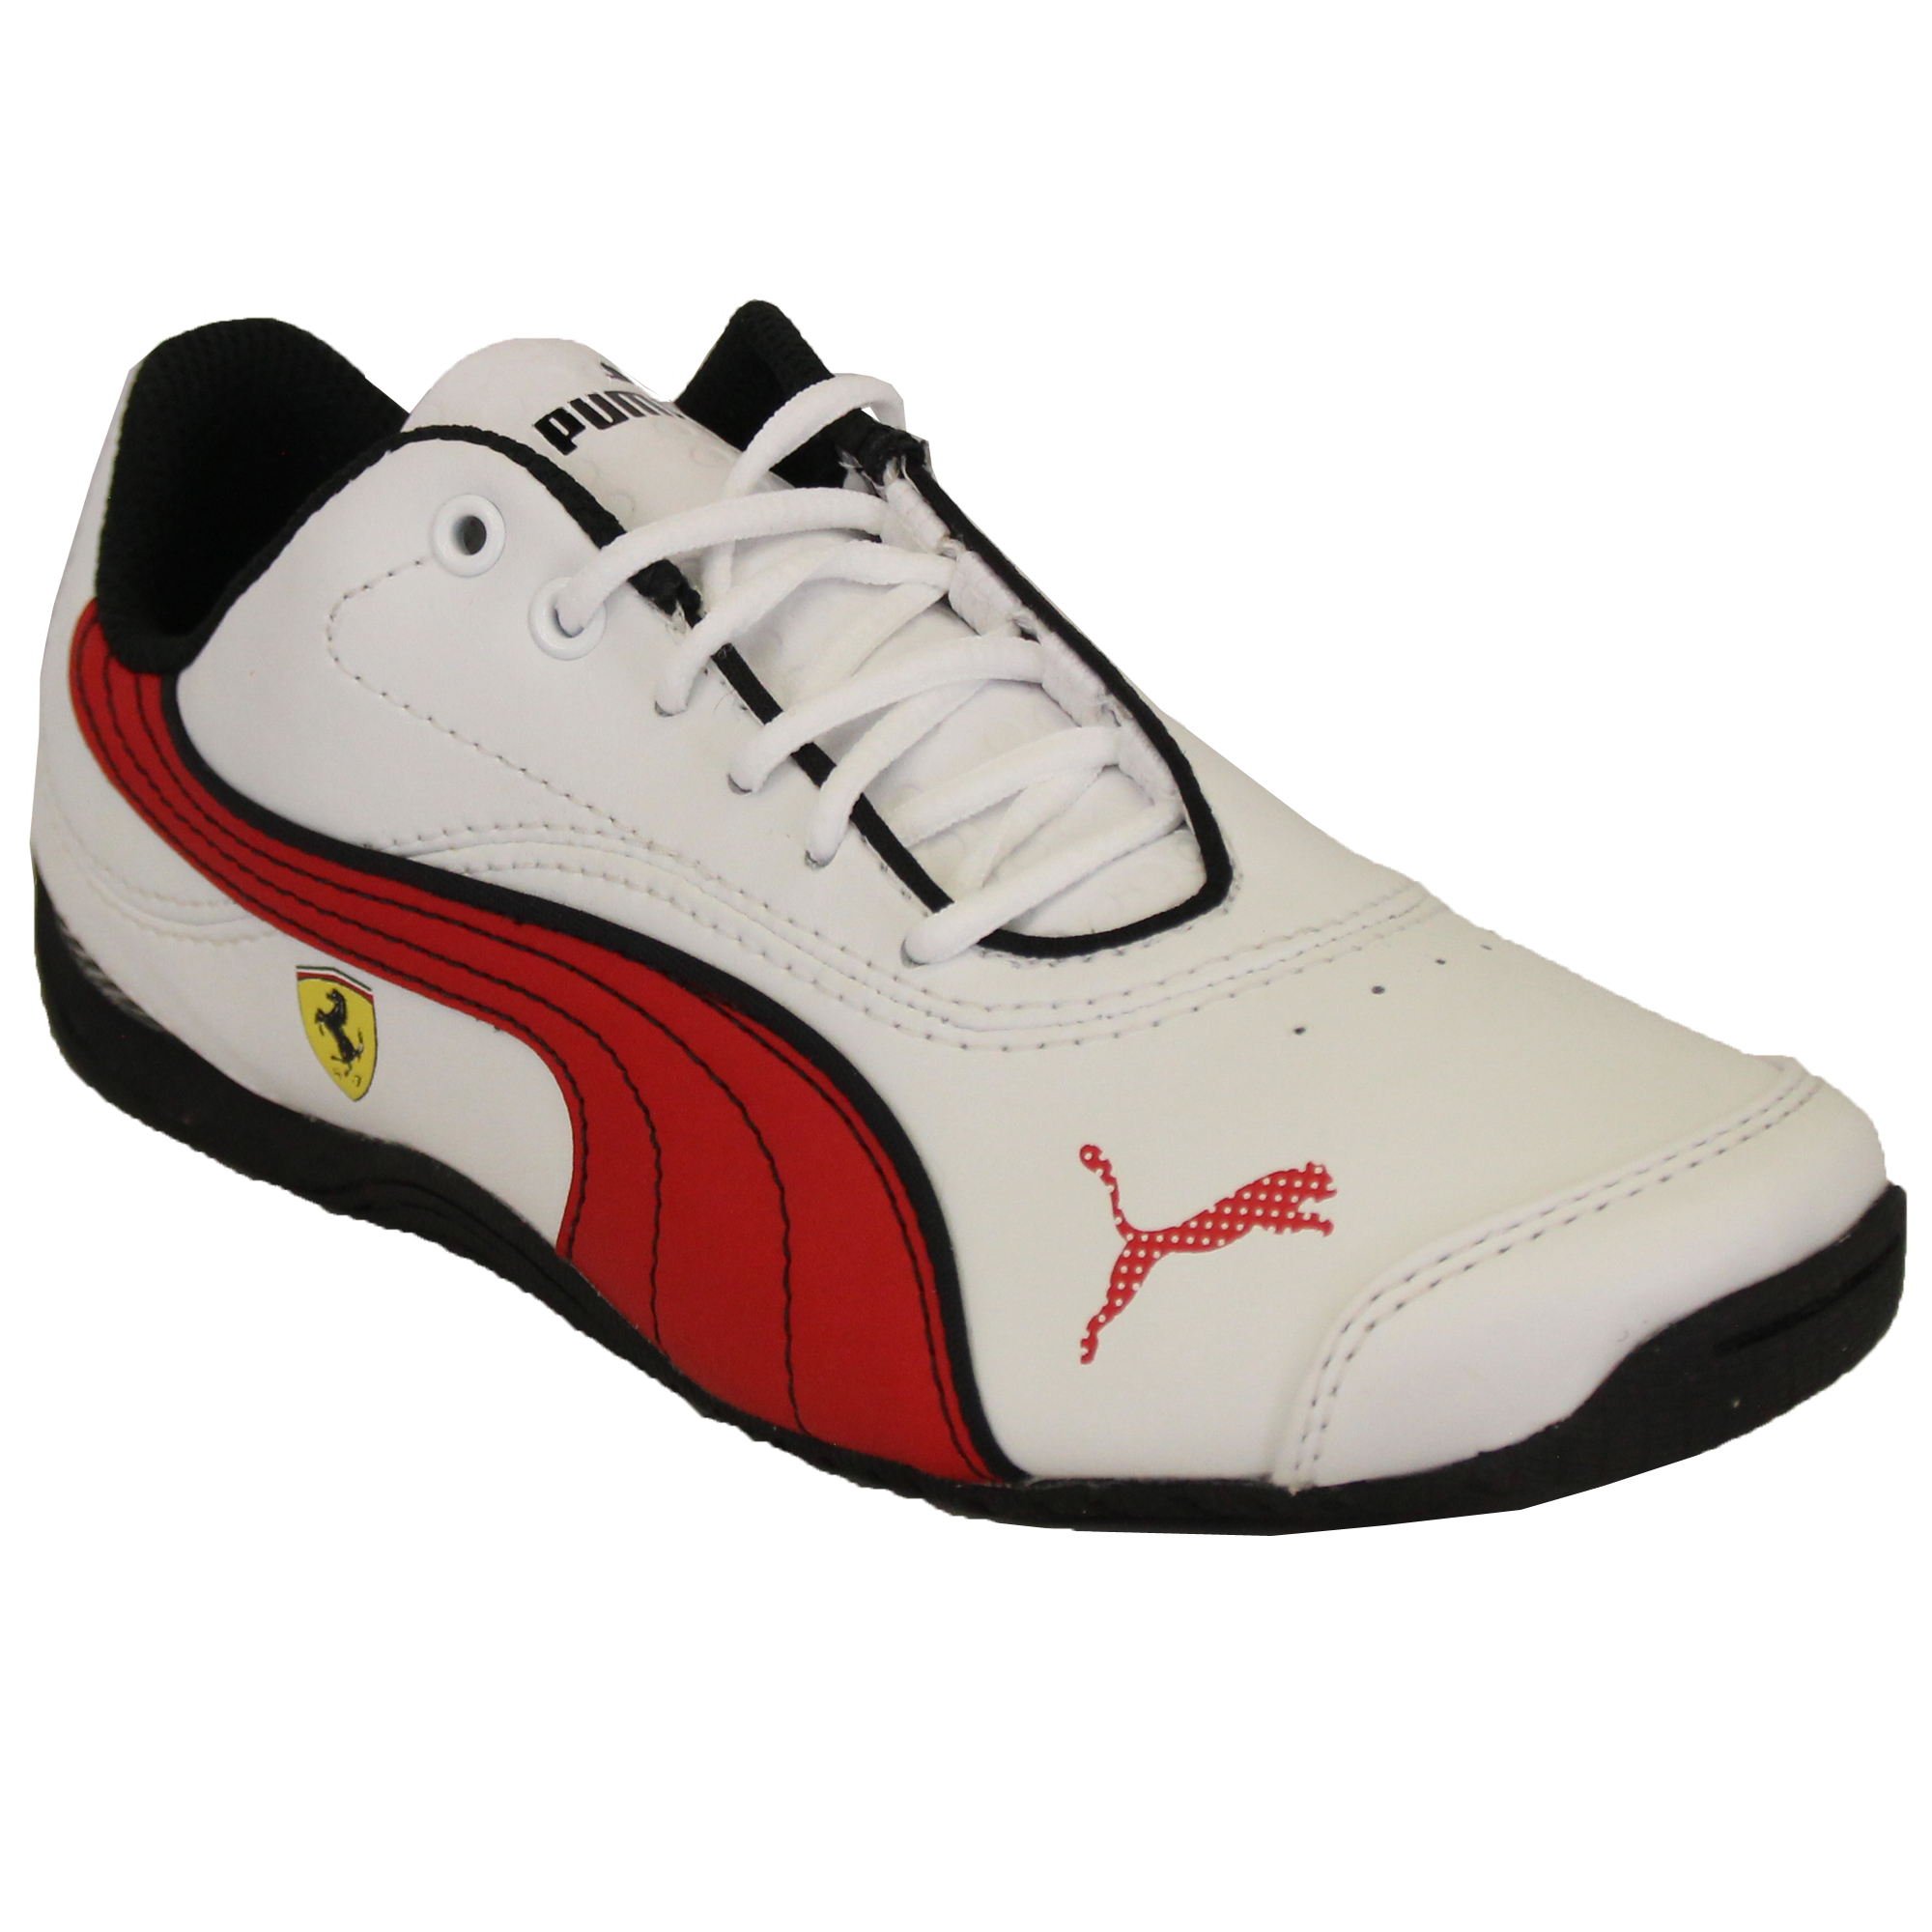 42736f91e612a Garçons Puma Ferrari Baskets Cuir Enfants Evo Power Speed Chat ...